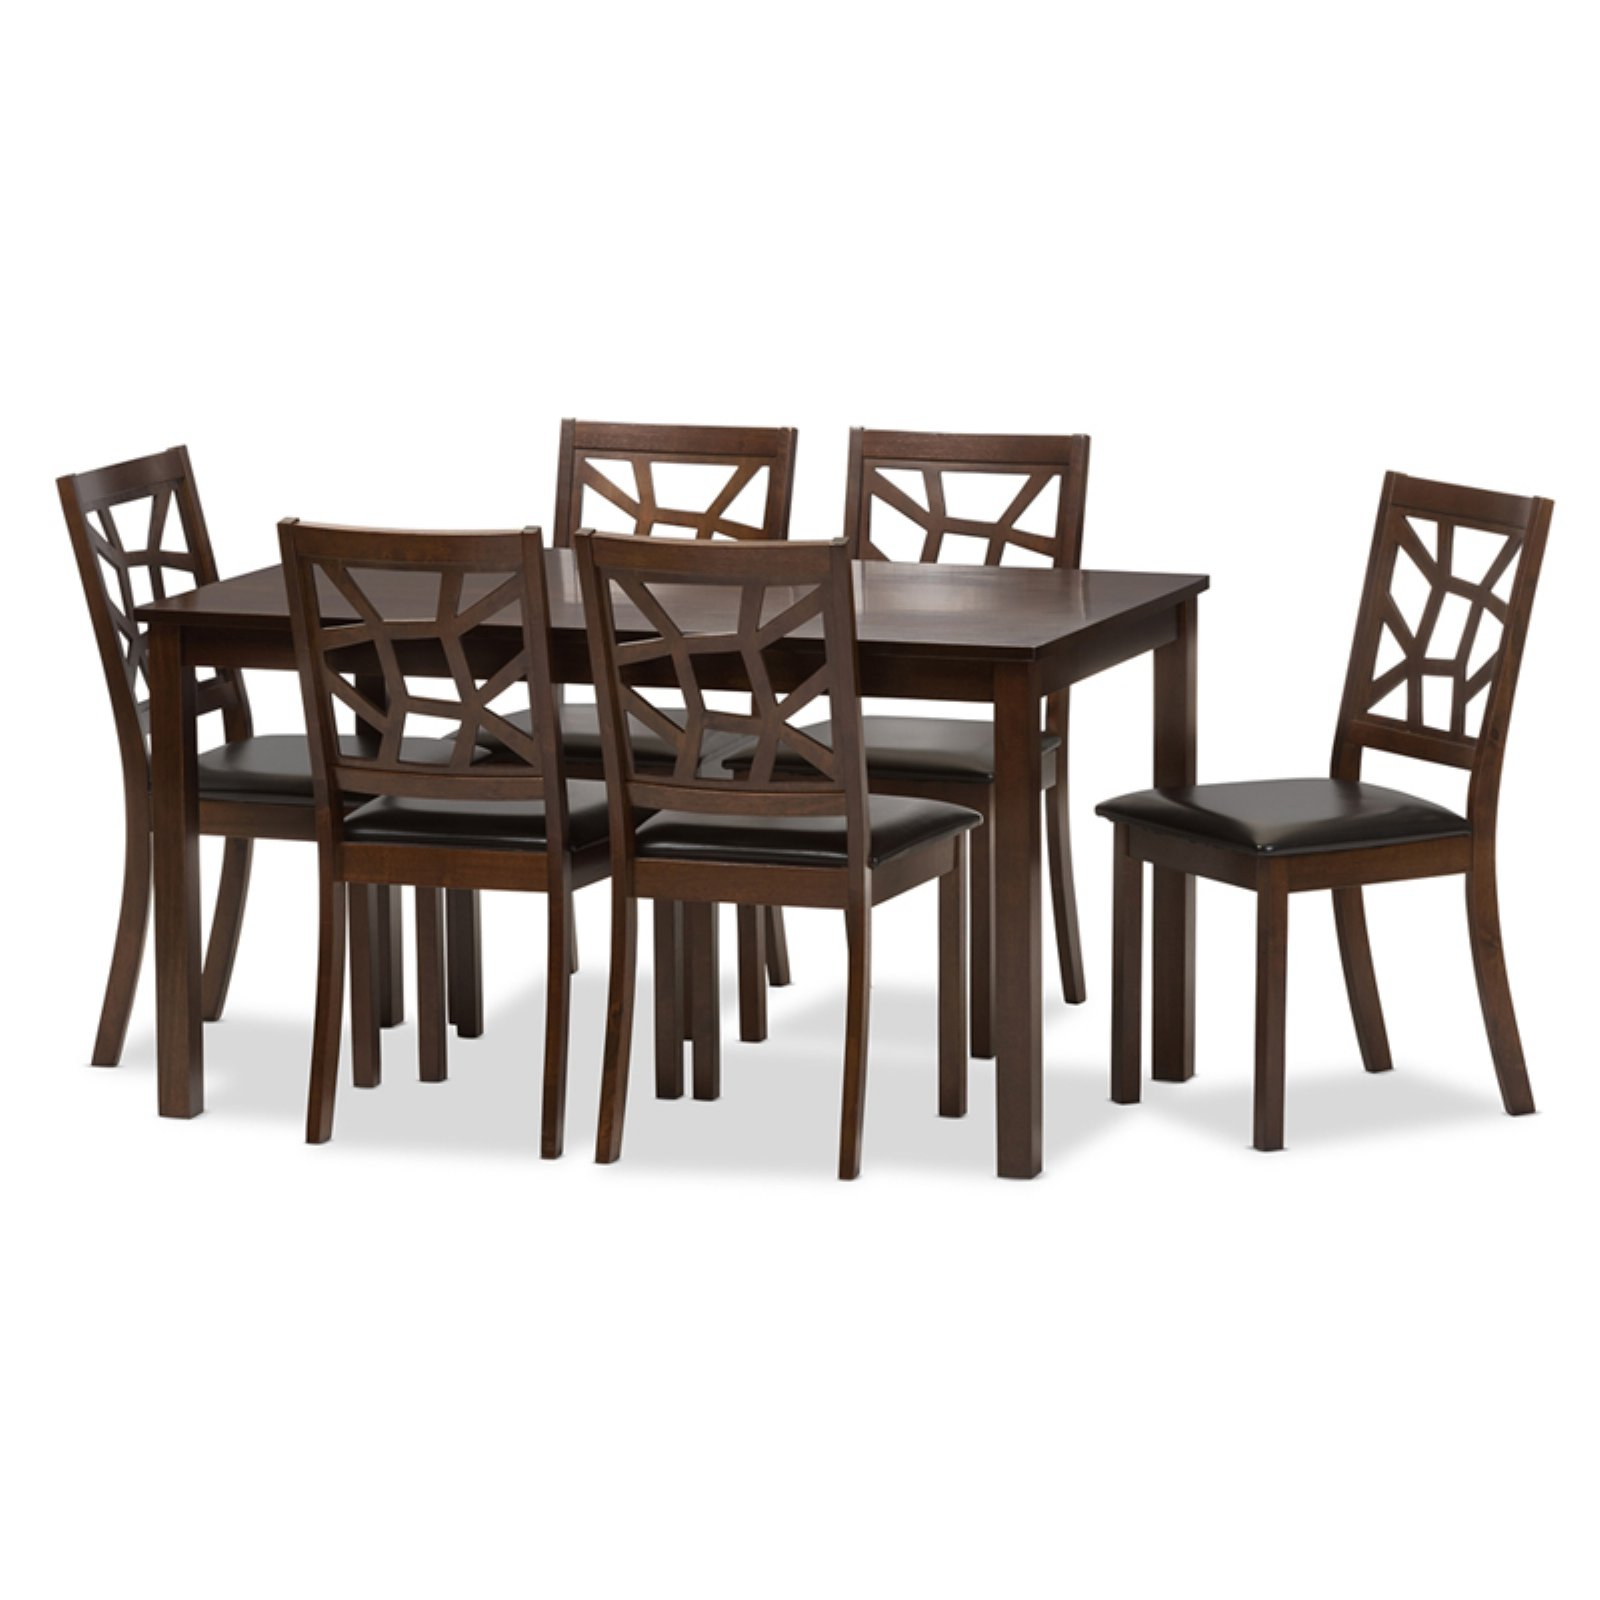 Baxton Studio Mozaika 7 Piece Dining Table Set by Wholesale Interiors